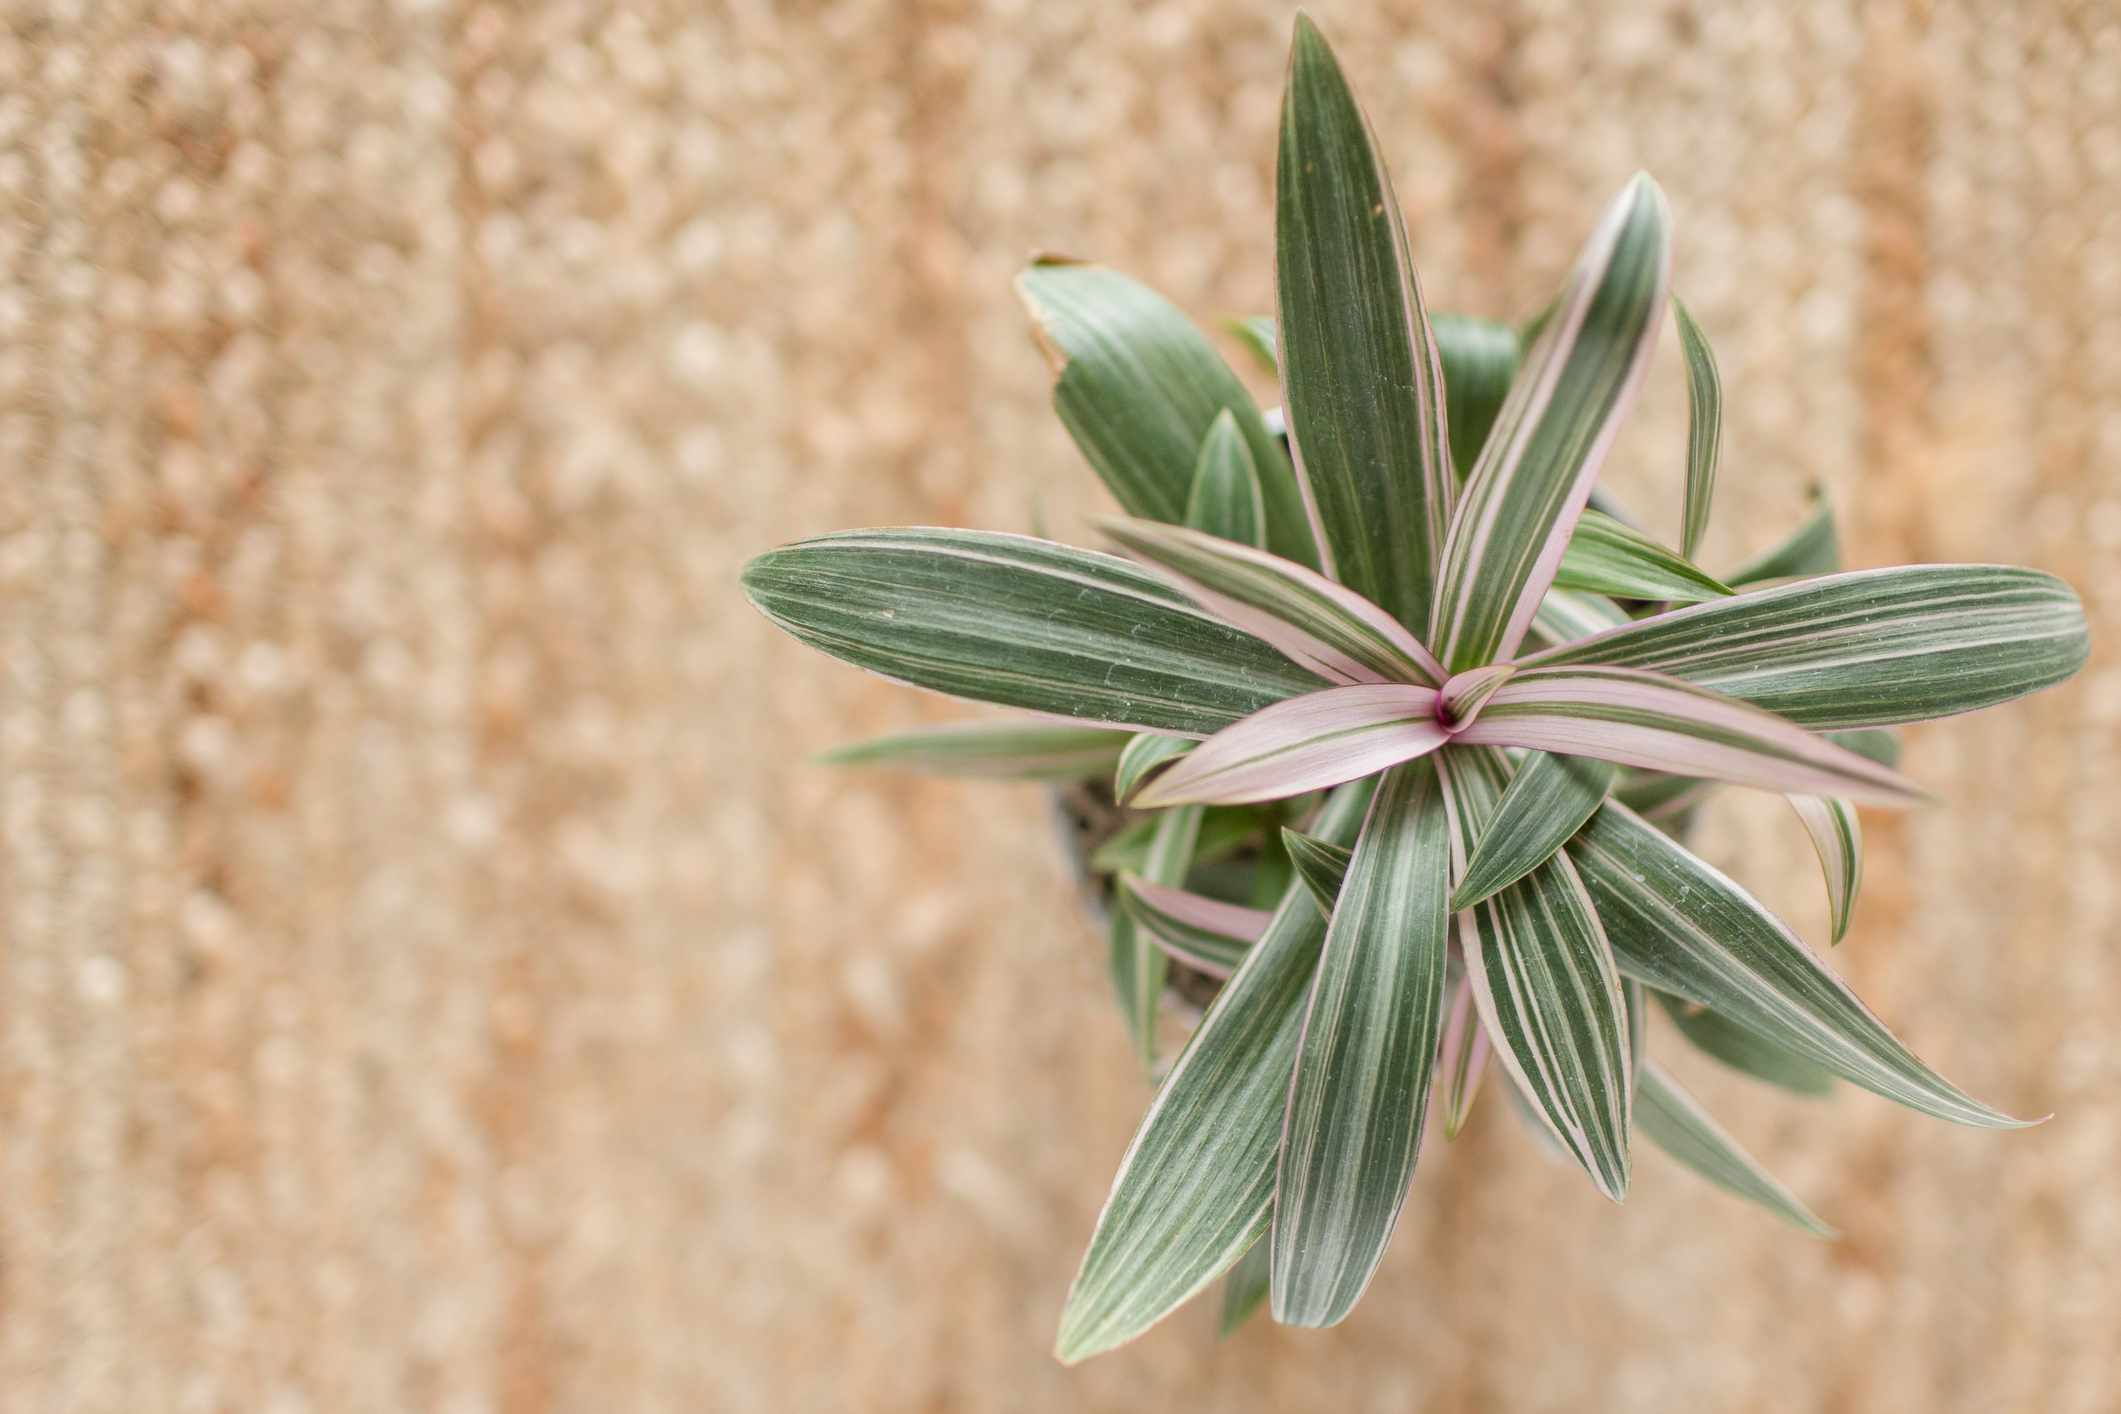 tradescantia 'red hill' houseplant from top against tan background